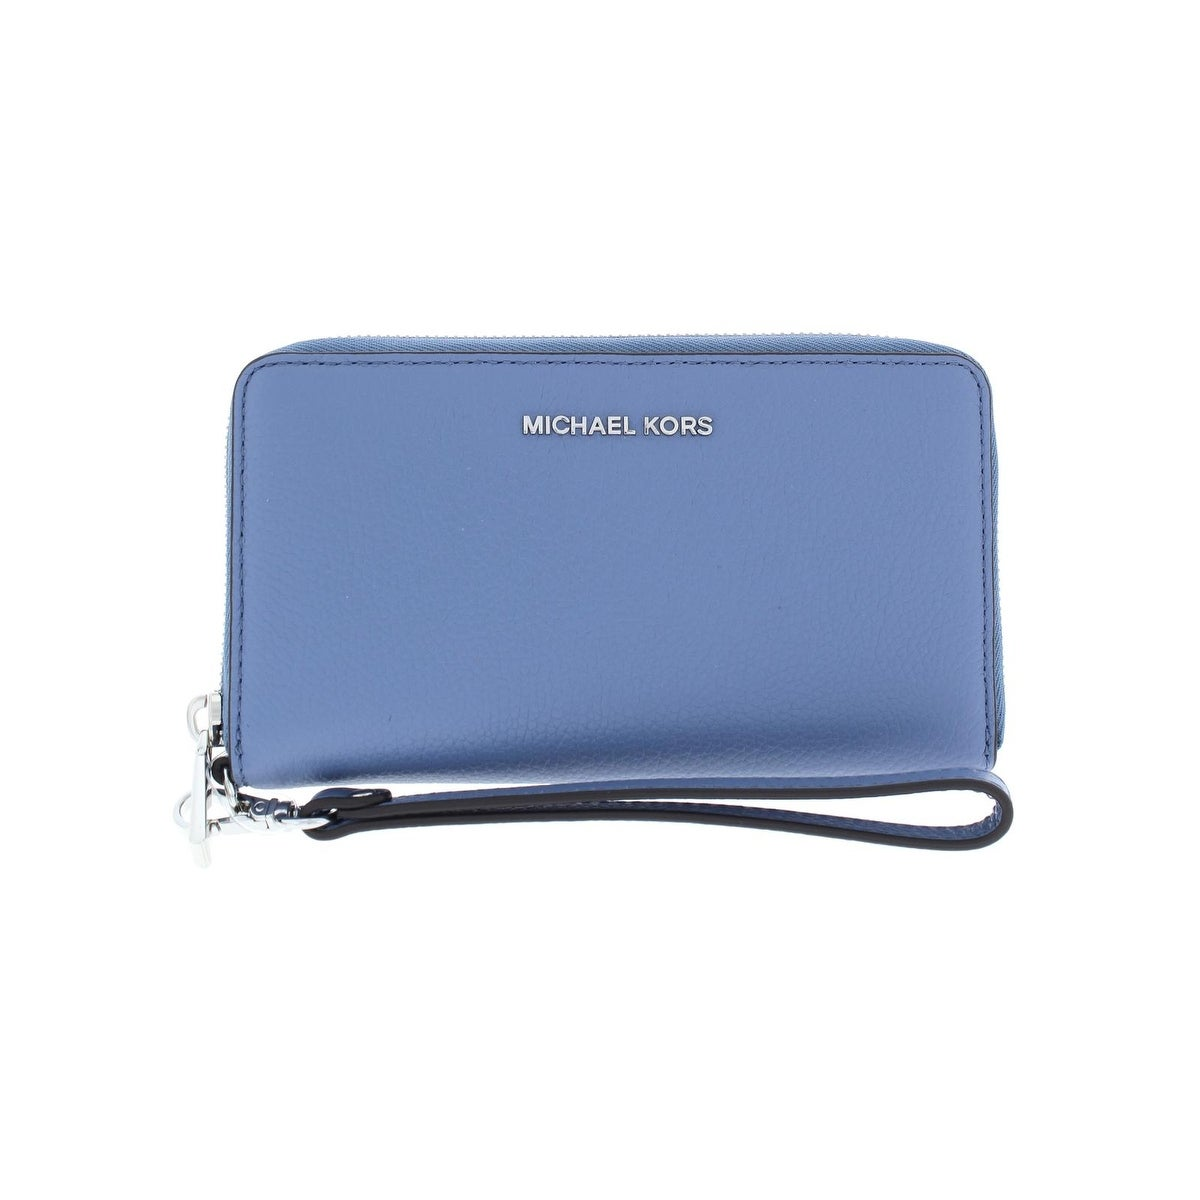 6137d9cf0fa4 Michael Kors Womens Mercer Wristlet Wallet Leather Identity Protection - o s